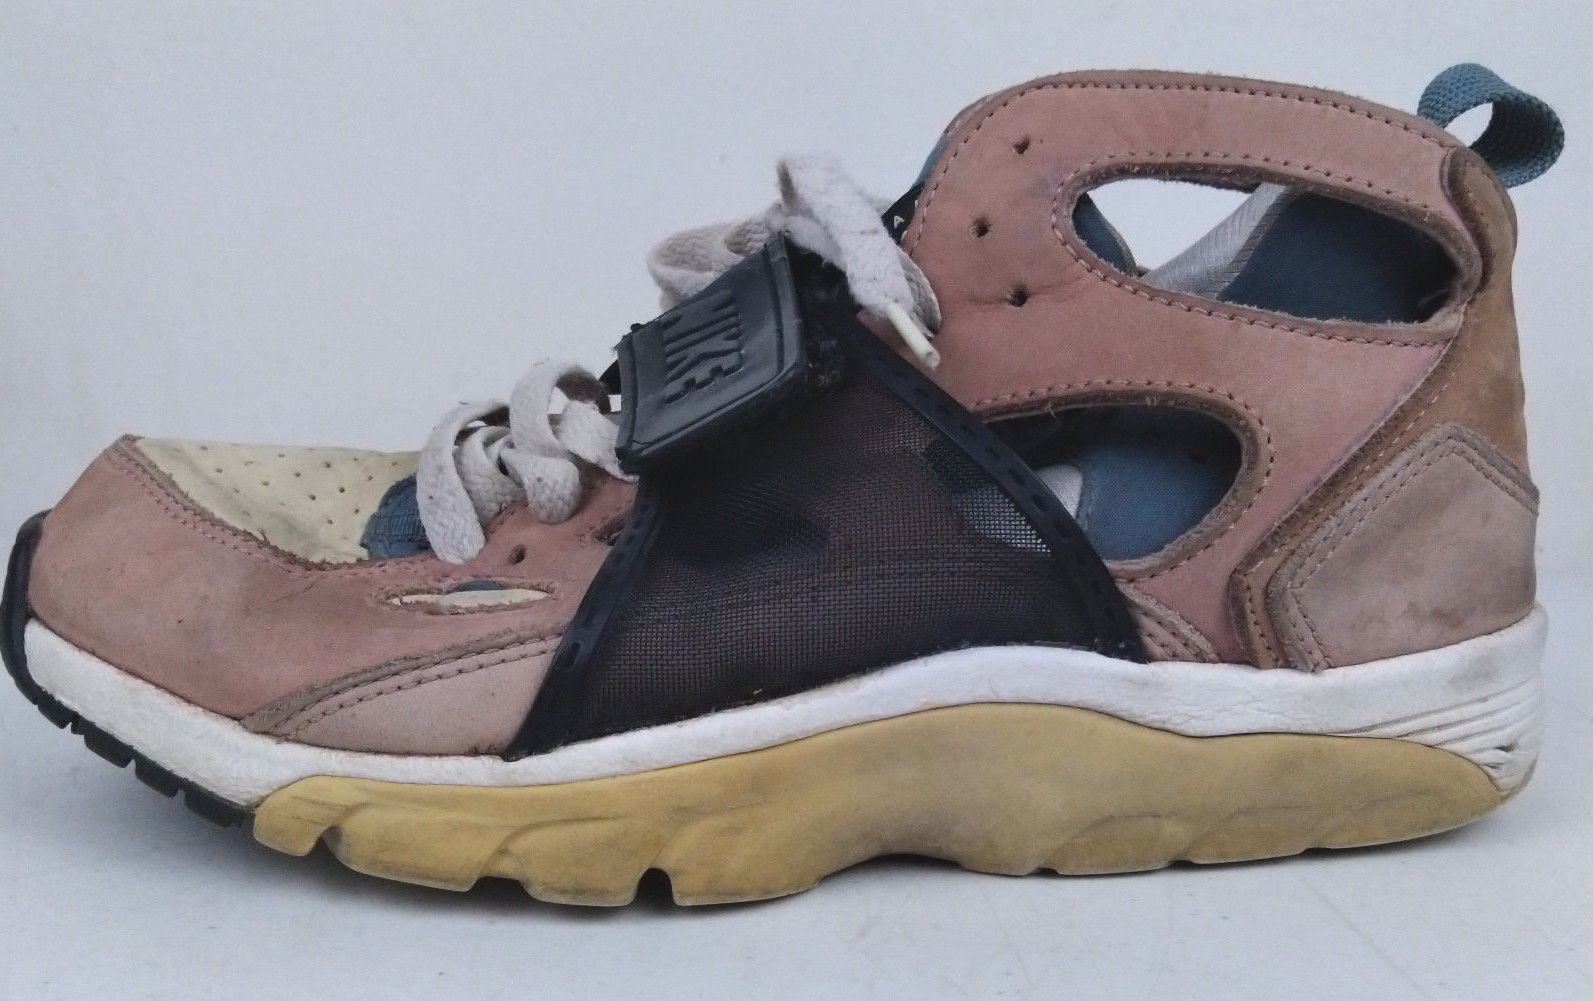 59a8a25123f3 Vtg 2003 Nike Air Huarache LE Escape Bisque and 13 similar items. S l1600